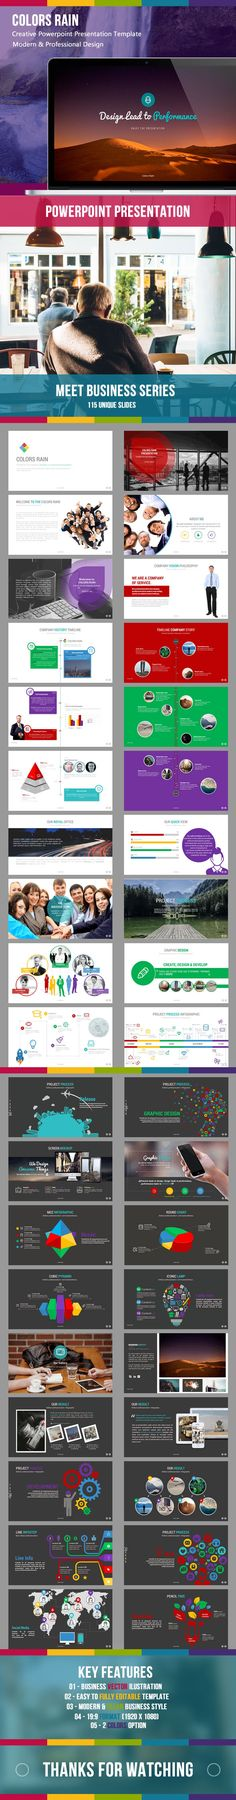 Colors Rain Powerpoint Template #powerpoint #powerpointtemplate #presentation Download: http://graphicriver.net/item/colors-rain-powerpoint/9601059?ref=ksioks